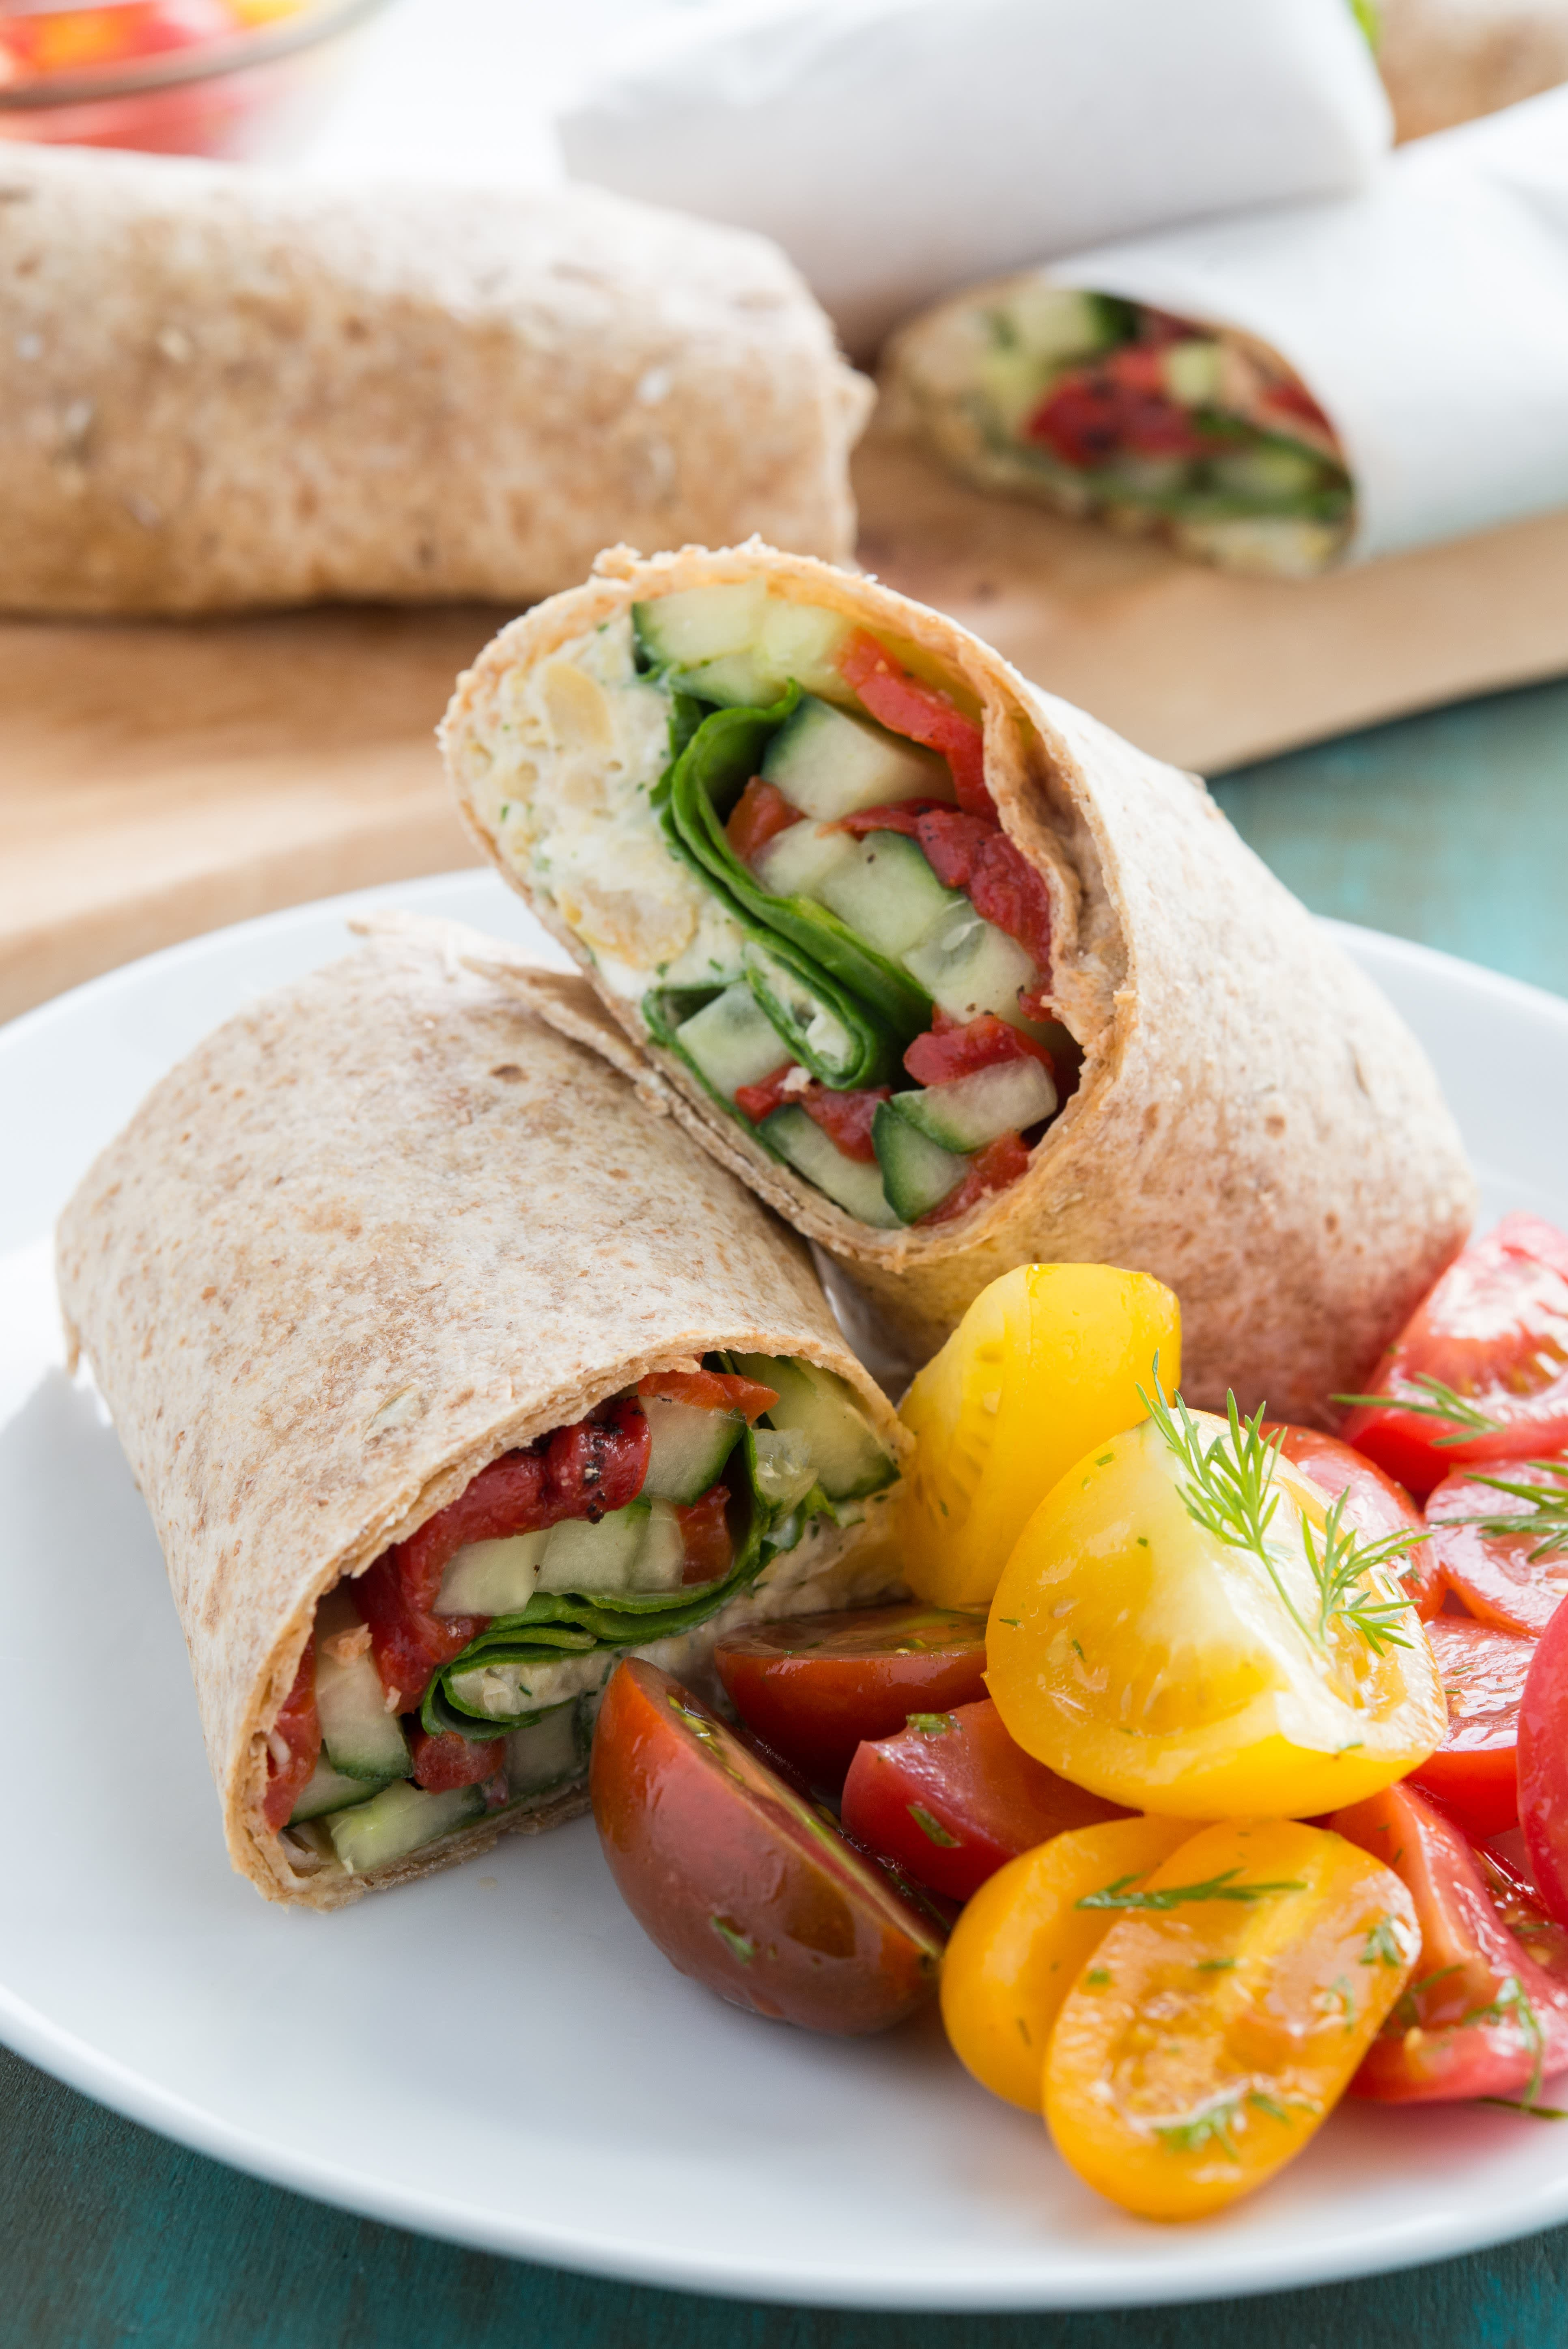 Chickpea, Feta, and Spinach Wraps